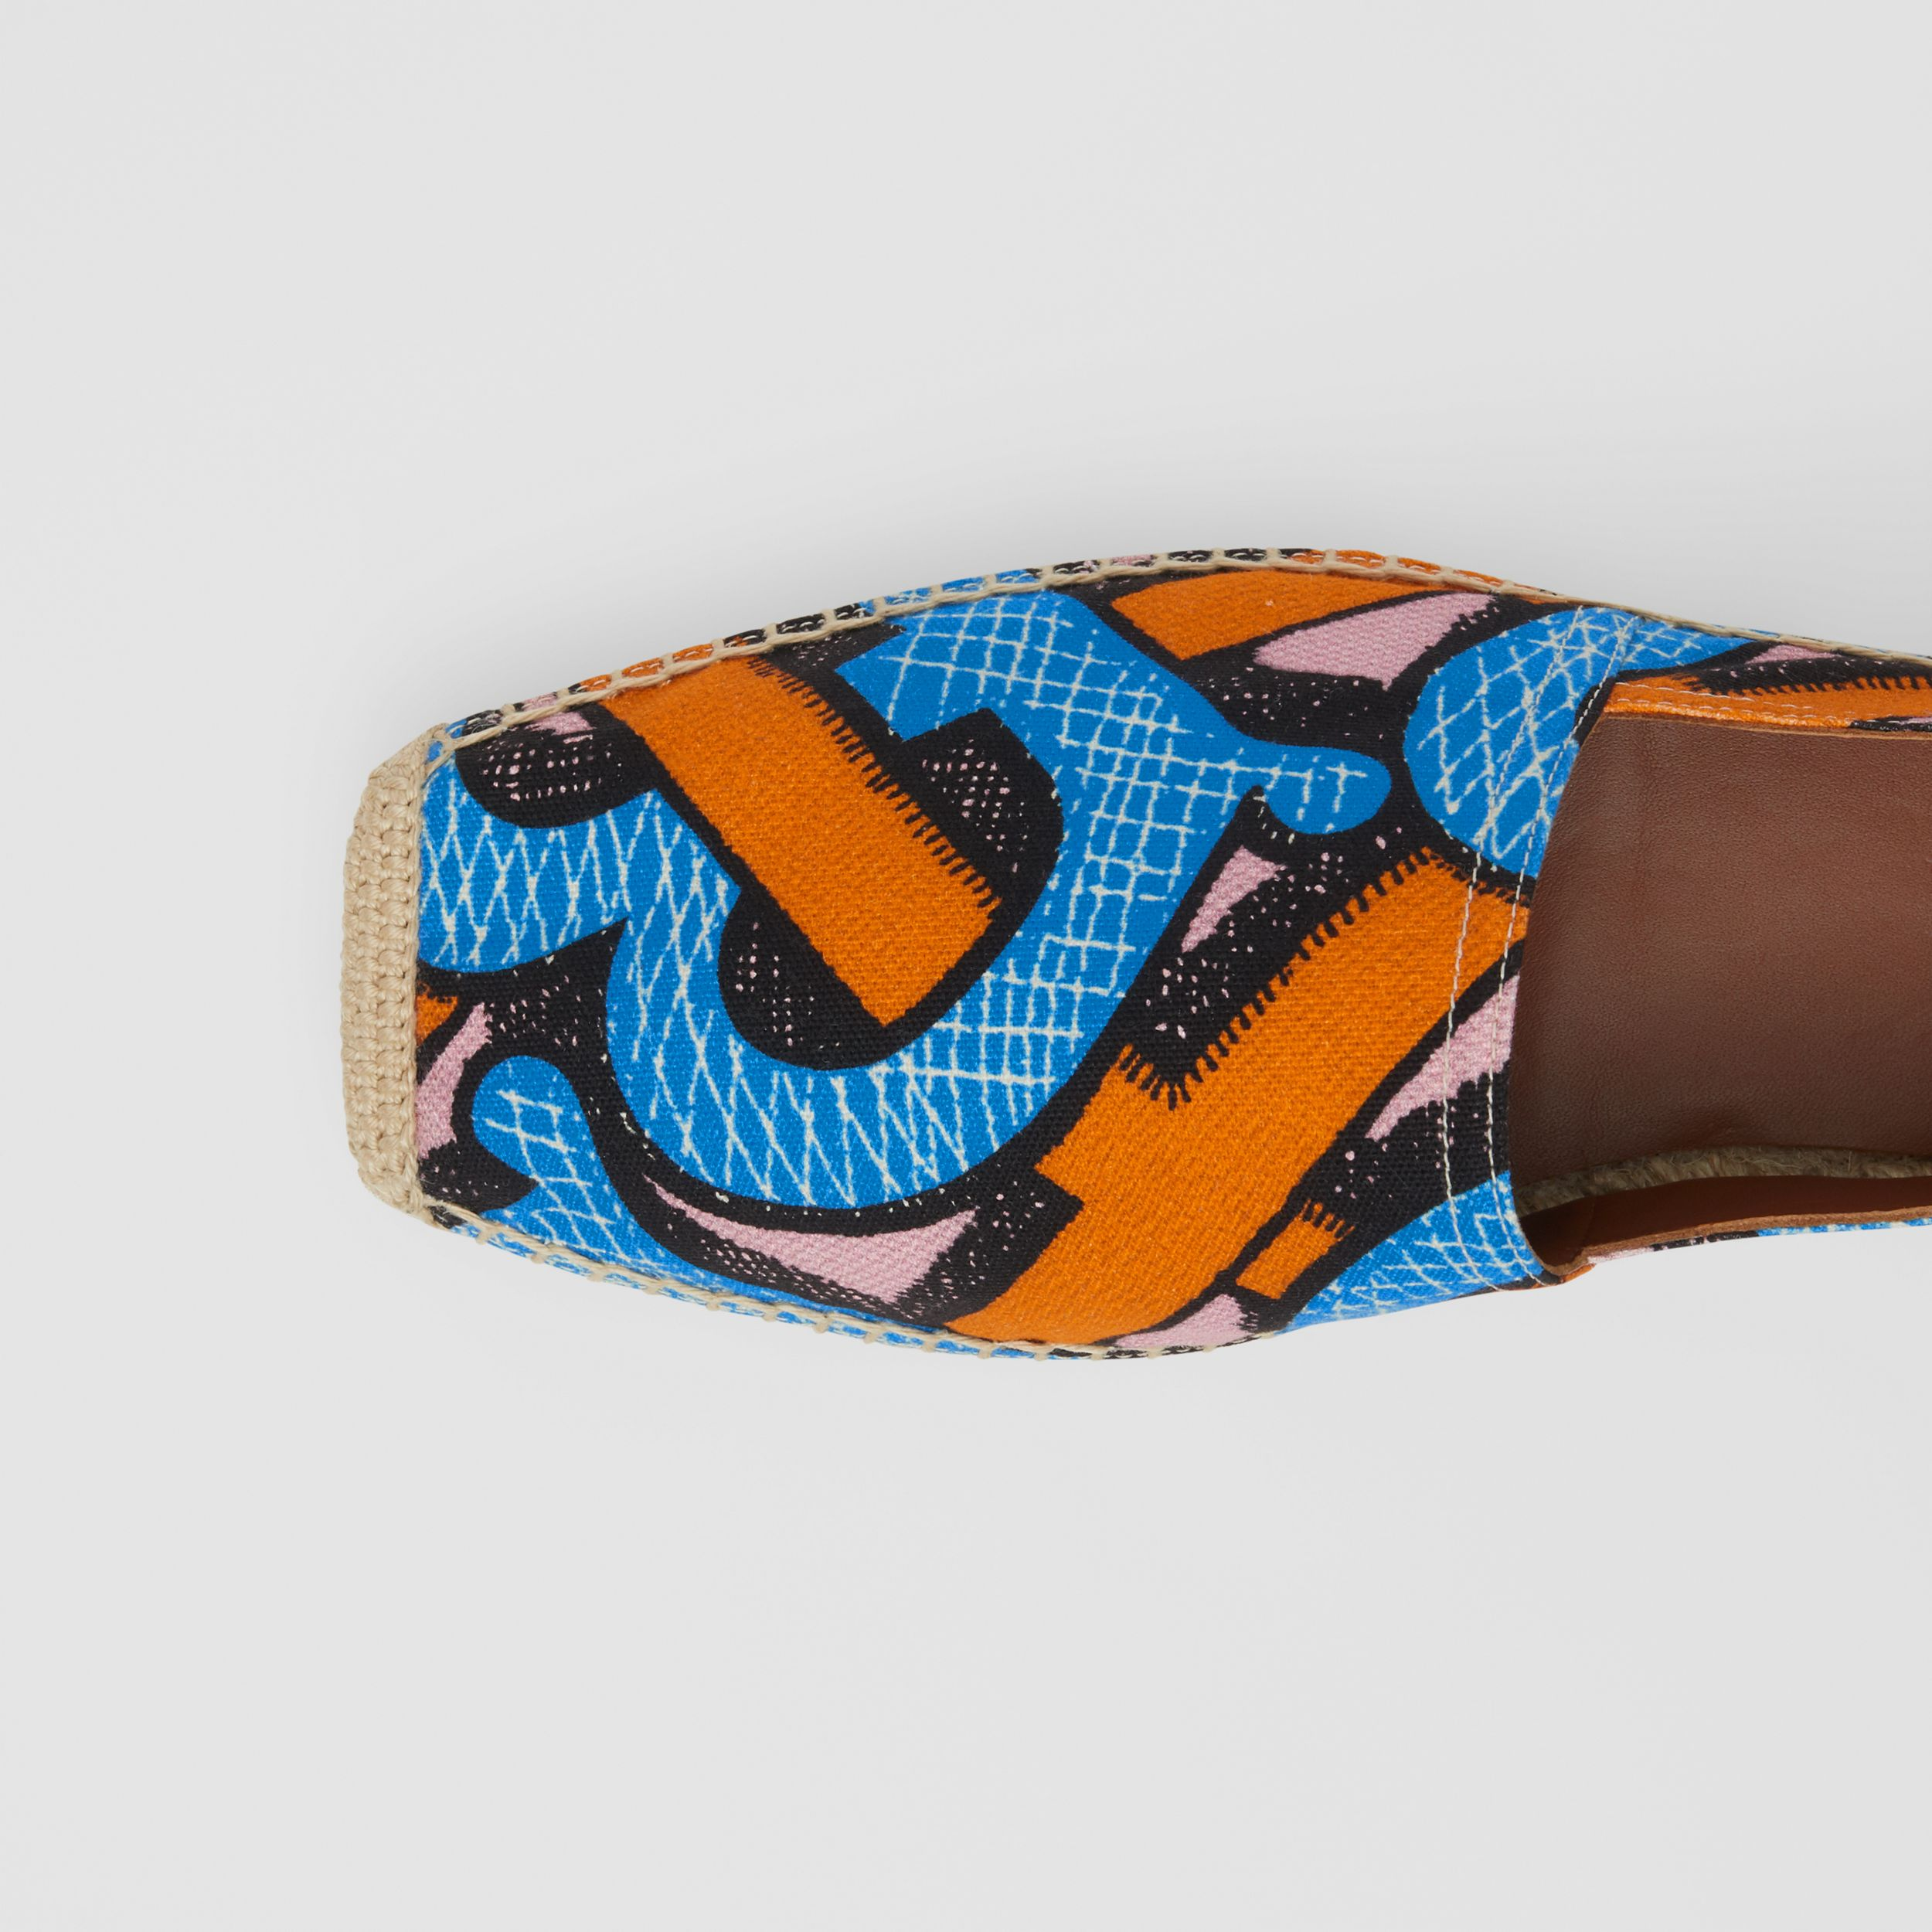 Monogram Print Cotton Canvas Espadrilles in Bright Cobalt - Women | Burberry Canada - 2